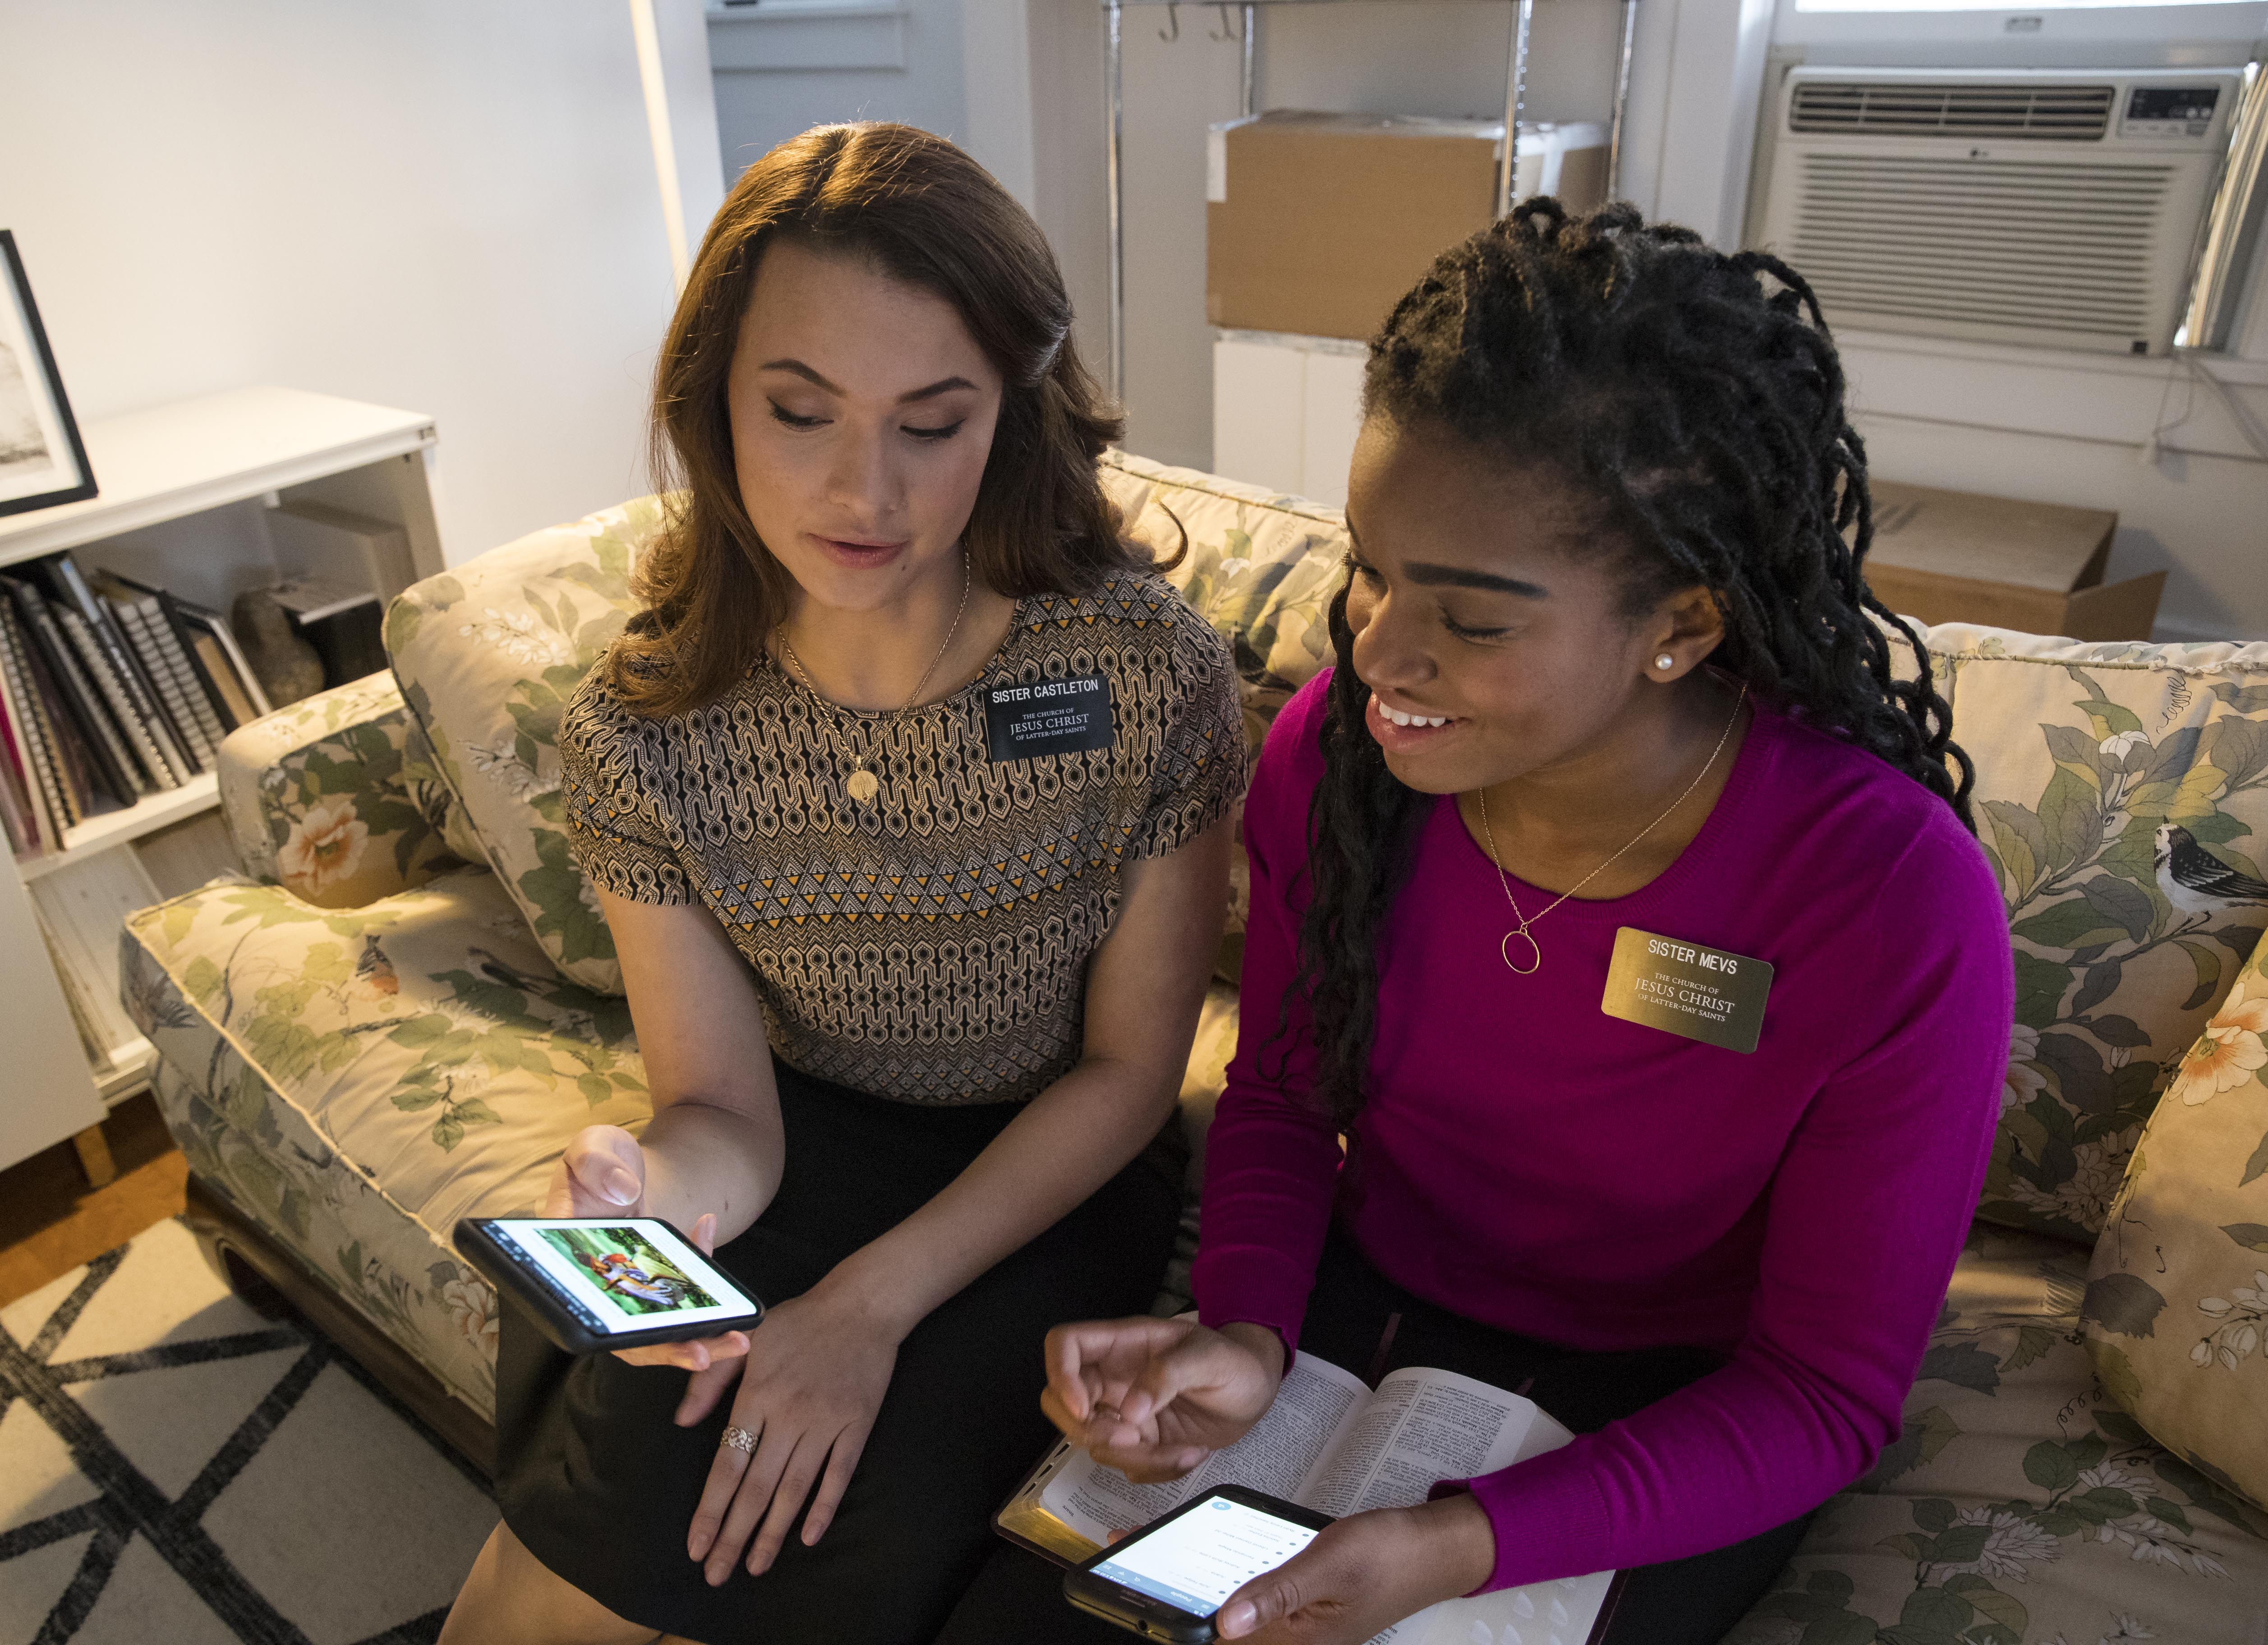 The First Presidency of the Church of Jesus Christ of Latter-day Saints announced Friday, Feb. 15, that missionaries worldwide are now authorized to communicate with their families each week on preparation day by text messages, online messaging, phone calls and video chats, in addition to letters and emails.